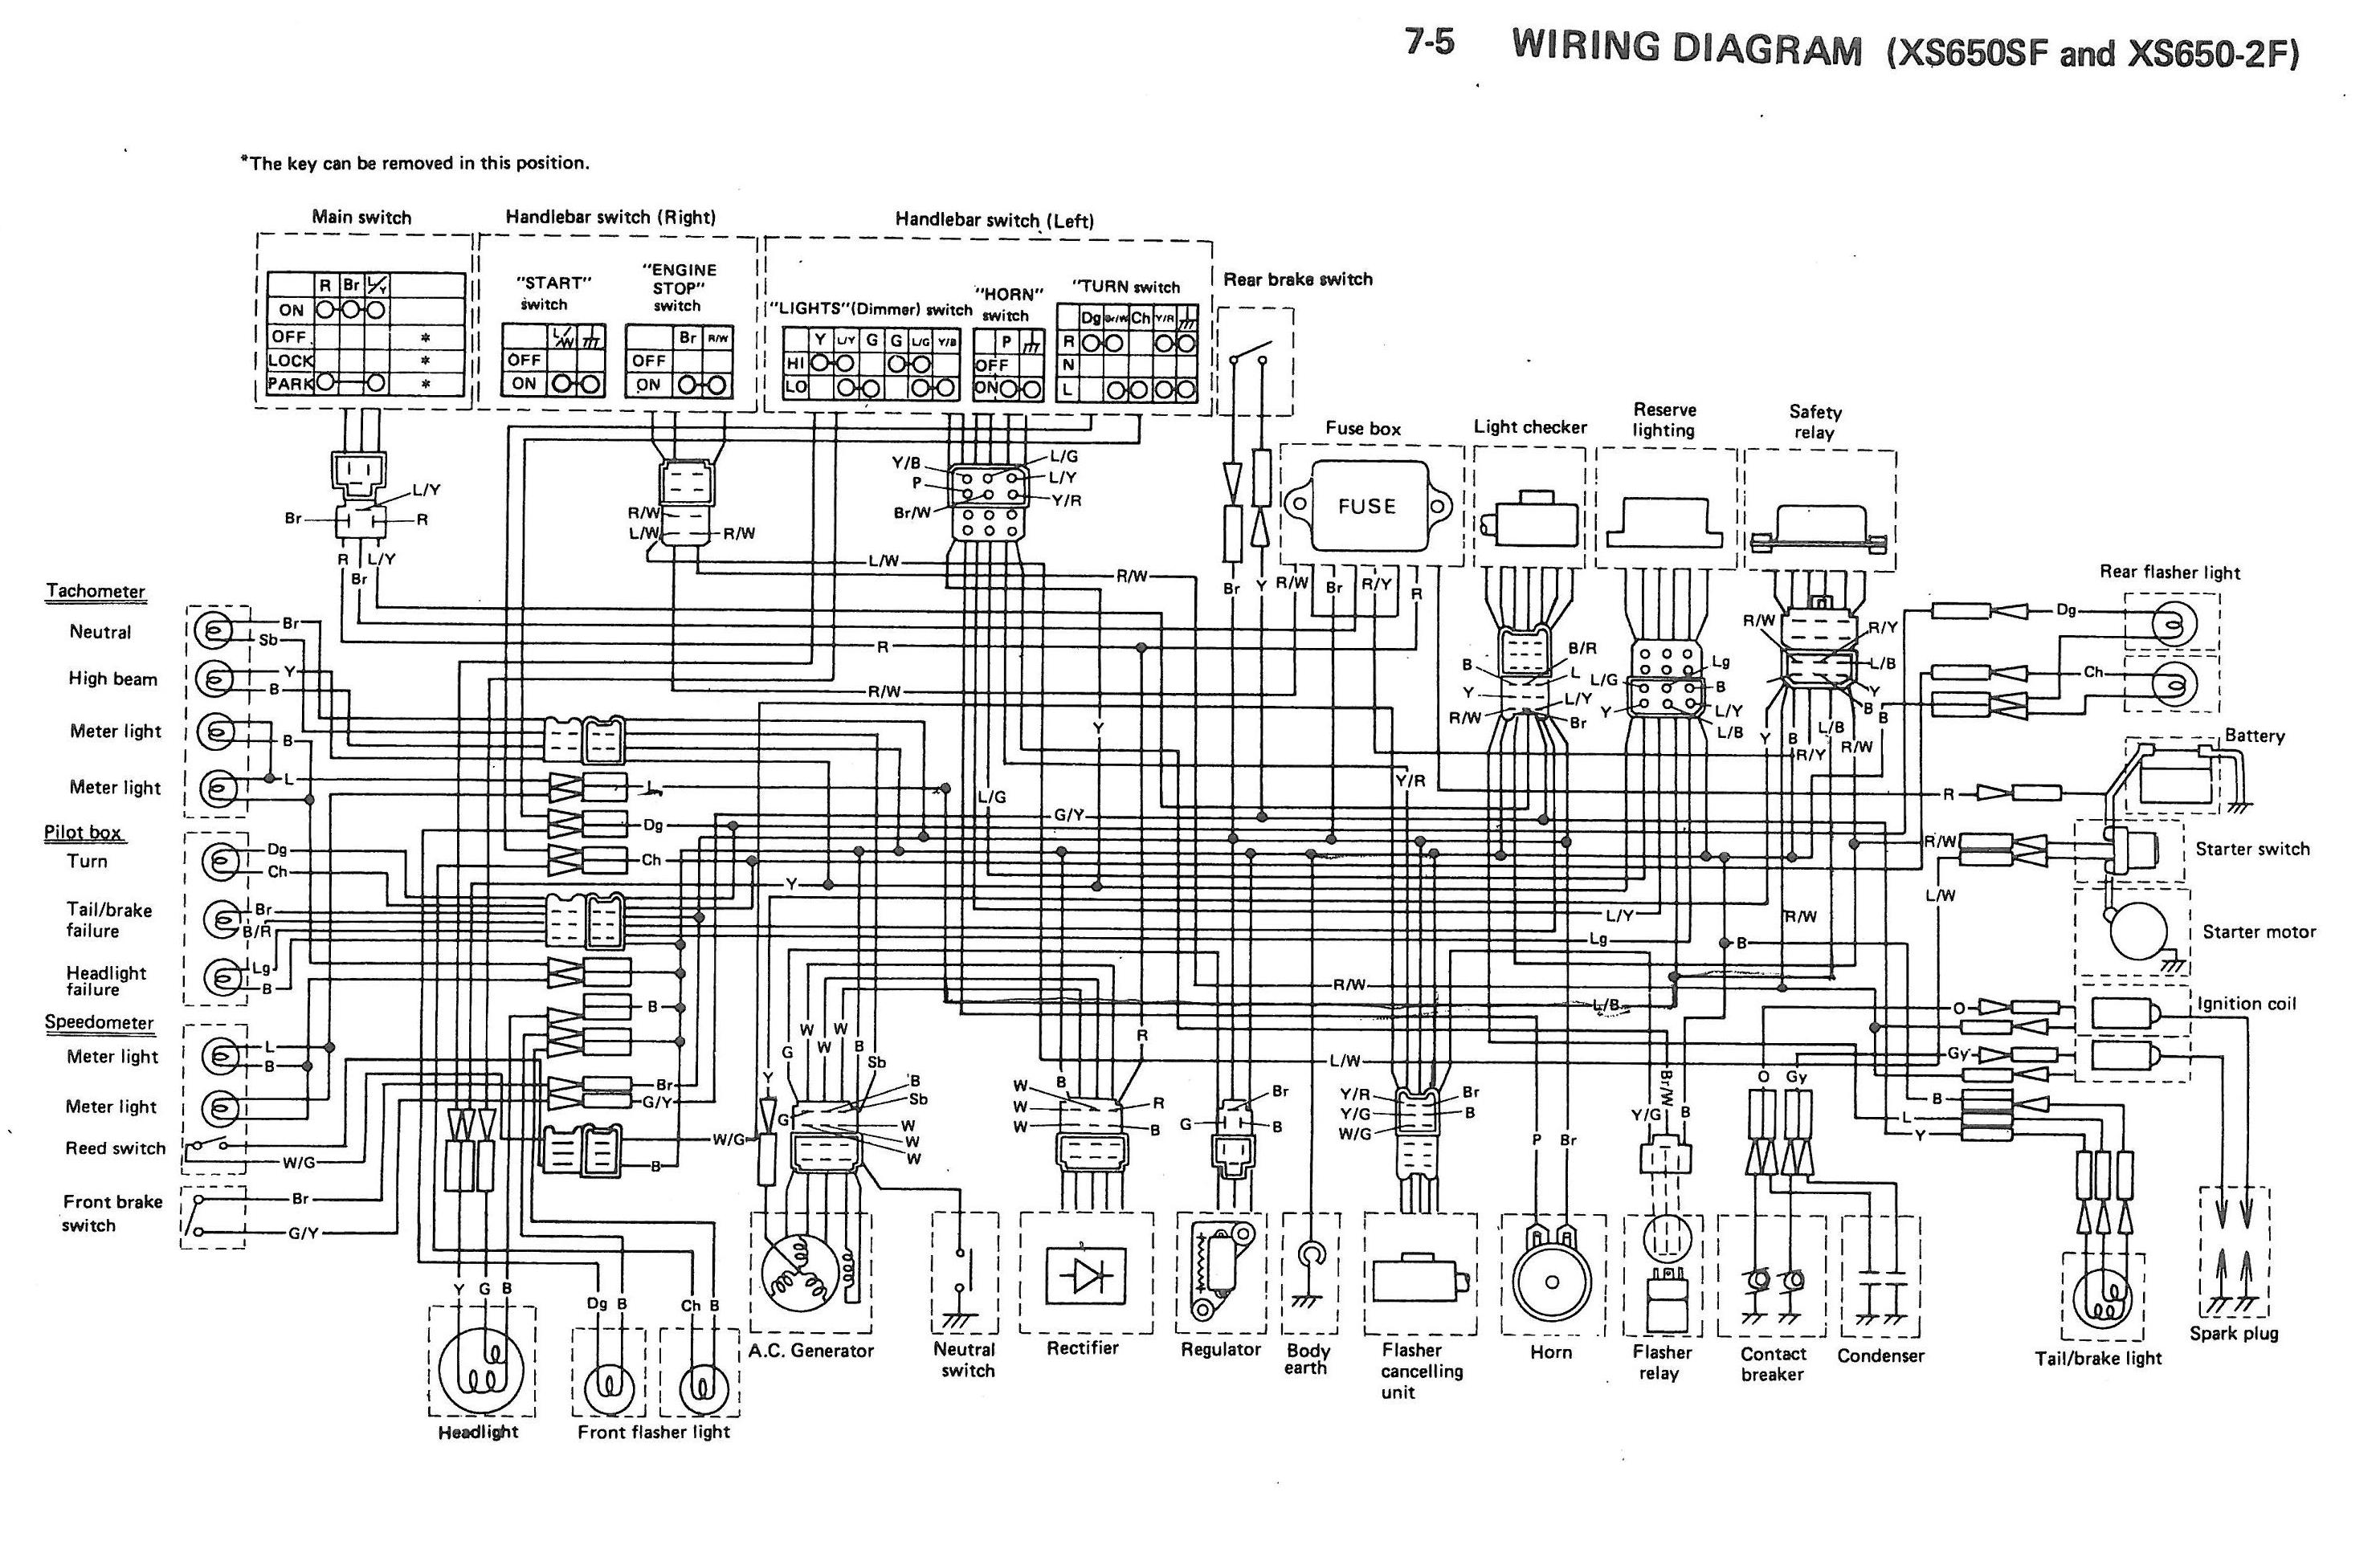 9B9 Sr250 Wiring Diagram | Wiring Resources on yamaha motorcycle wheels and tires, yamaha rd 350 wiring diagram, yamaha generator wiring diagram, yamaha motorcycle drawings, yamaha motorcycle ignition system, yamaha dt 175 wiring-diagram, yamaha xs1100 wiring-diagram, yamaha seca xj650 wiring-diagram, yamaha moto 4 wiring diagram, yamaha 650 wiring diagram, yamaha wiring harness diagram, yamaha rt100 schematic, yamaha banshee wiring-diagram, yamaha motorcycle paint codes, yamaha grizzly 600 wiring diagram, yamaha schematic diagram, yamaha dt 100 wiring diagram, yamaha wiring schematics, yamaha virago wiring-diagram, yamaha xs650 wiring-diagram,